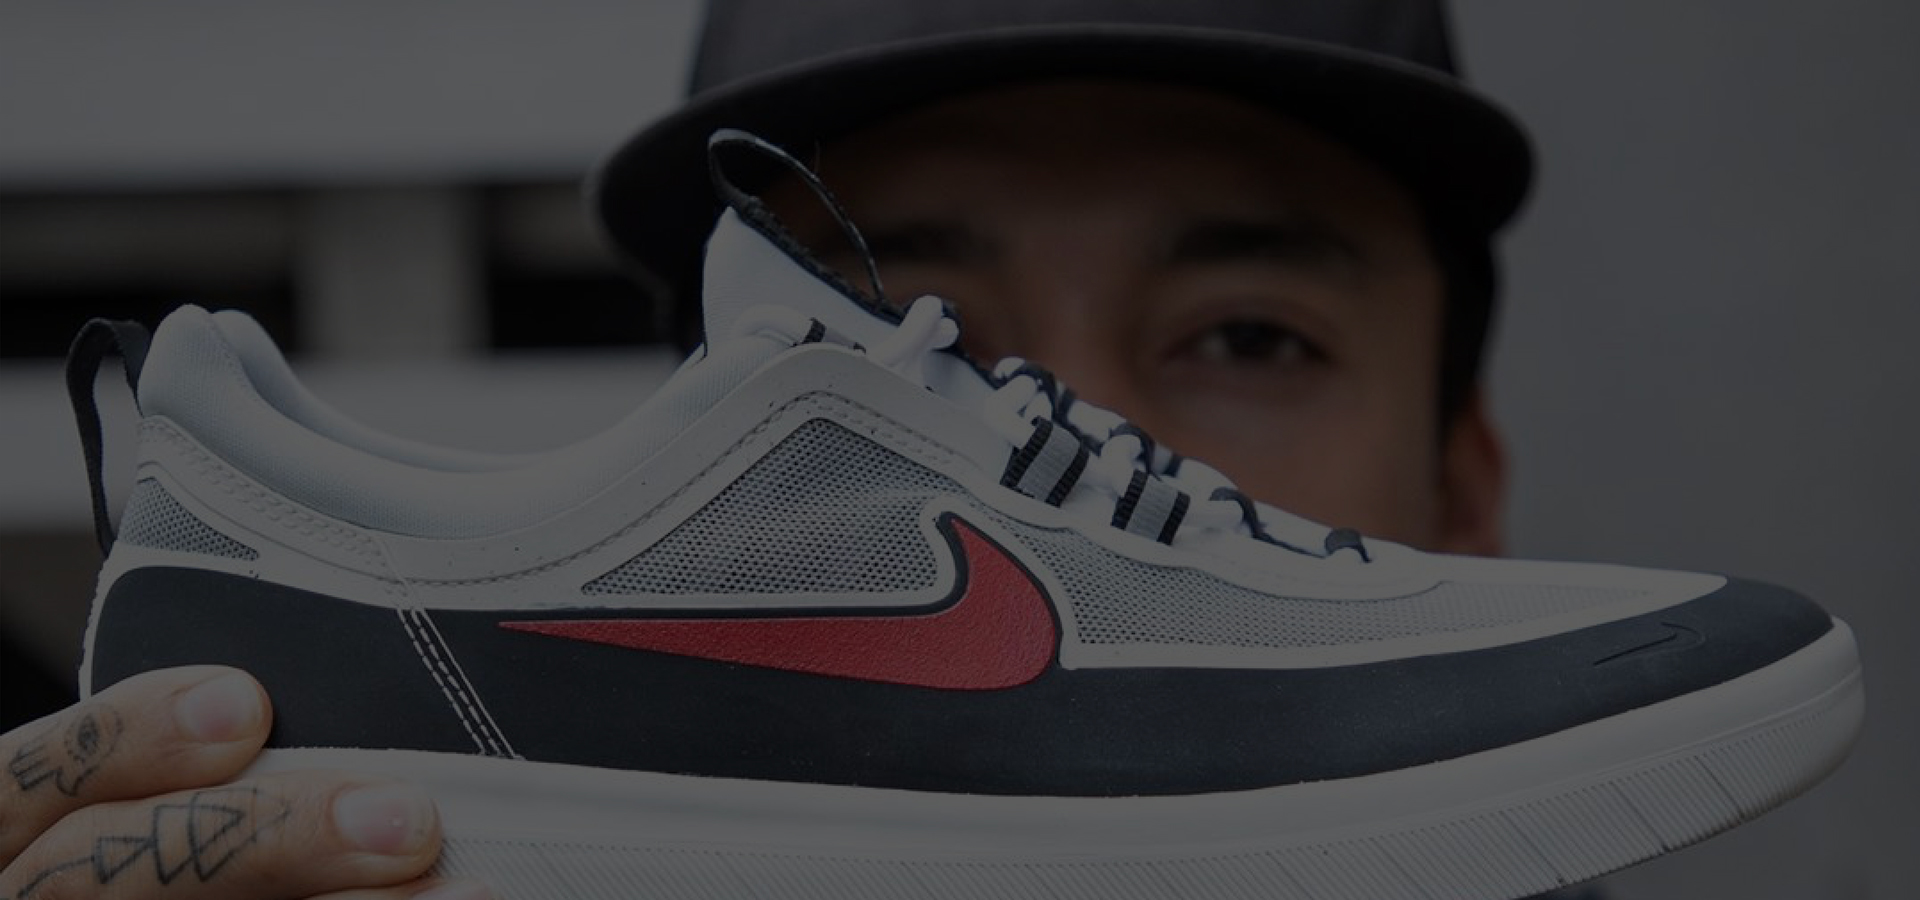 Nyjah Huston, Earth's Greatest Skater, Is Ready To Ride His Second Nike Shoe